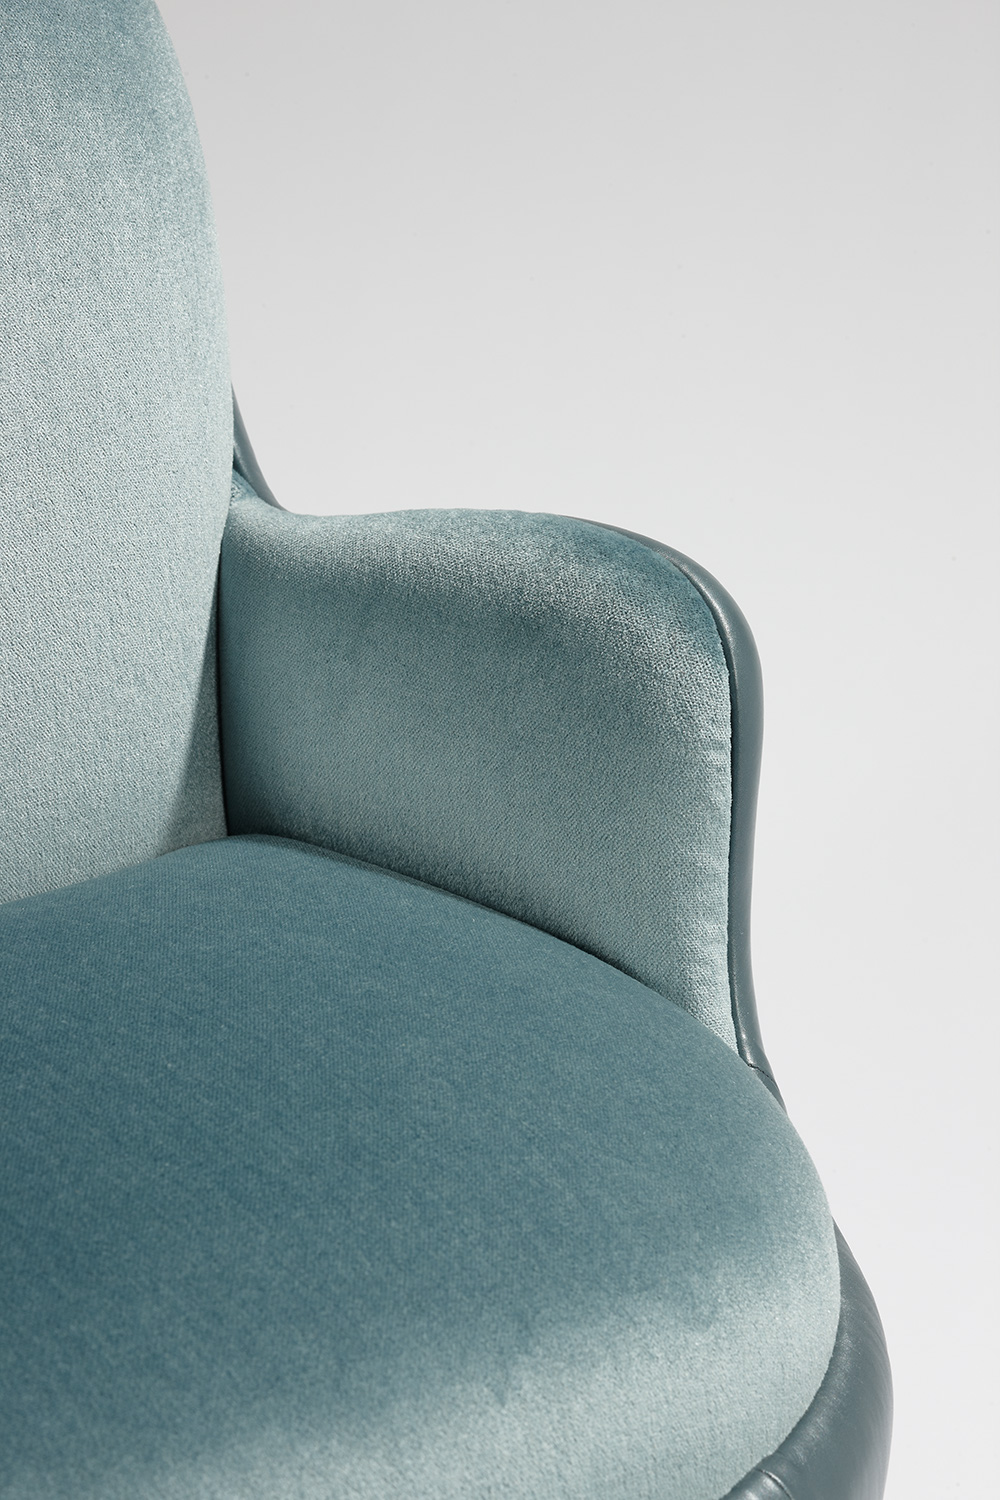 MB Armchair 'Ball' -8.jpg